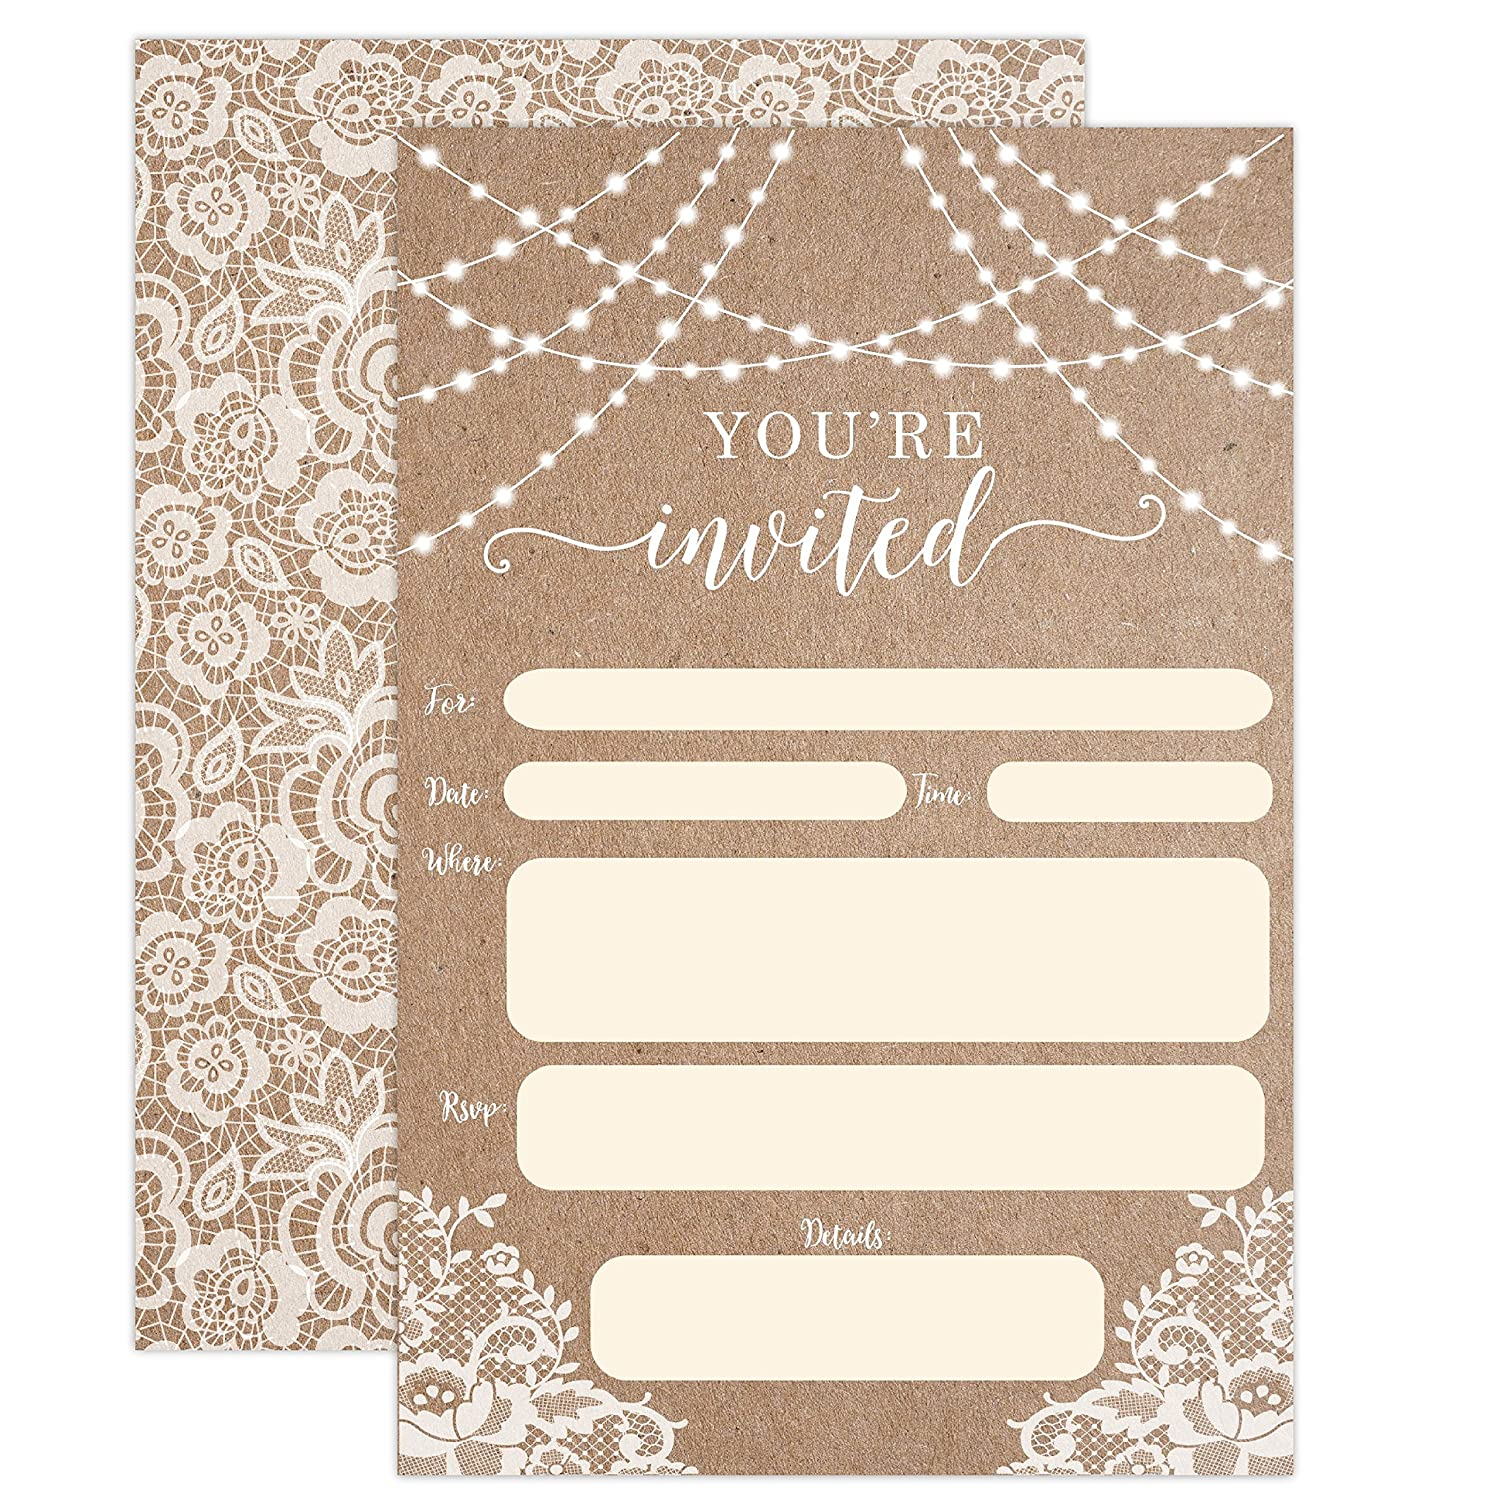 Country Kraft and Lace Invitations, Rustic Elegant Invites for Wedding Rehearsal Dinner, Bridal Shower, Engagement, Birthday, Bachelorette Party, Baby Shower, Reception, Anniversary, Housewarming Your Main Event Prints